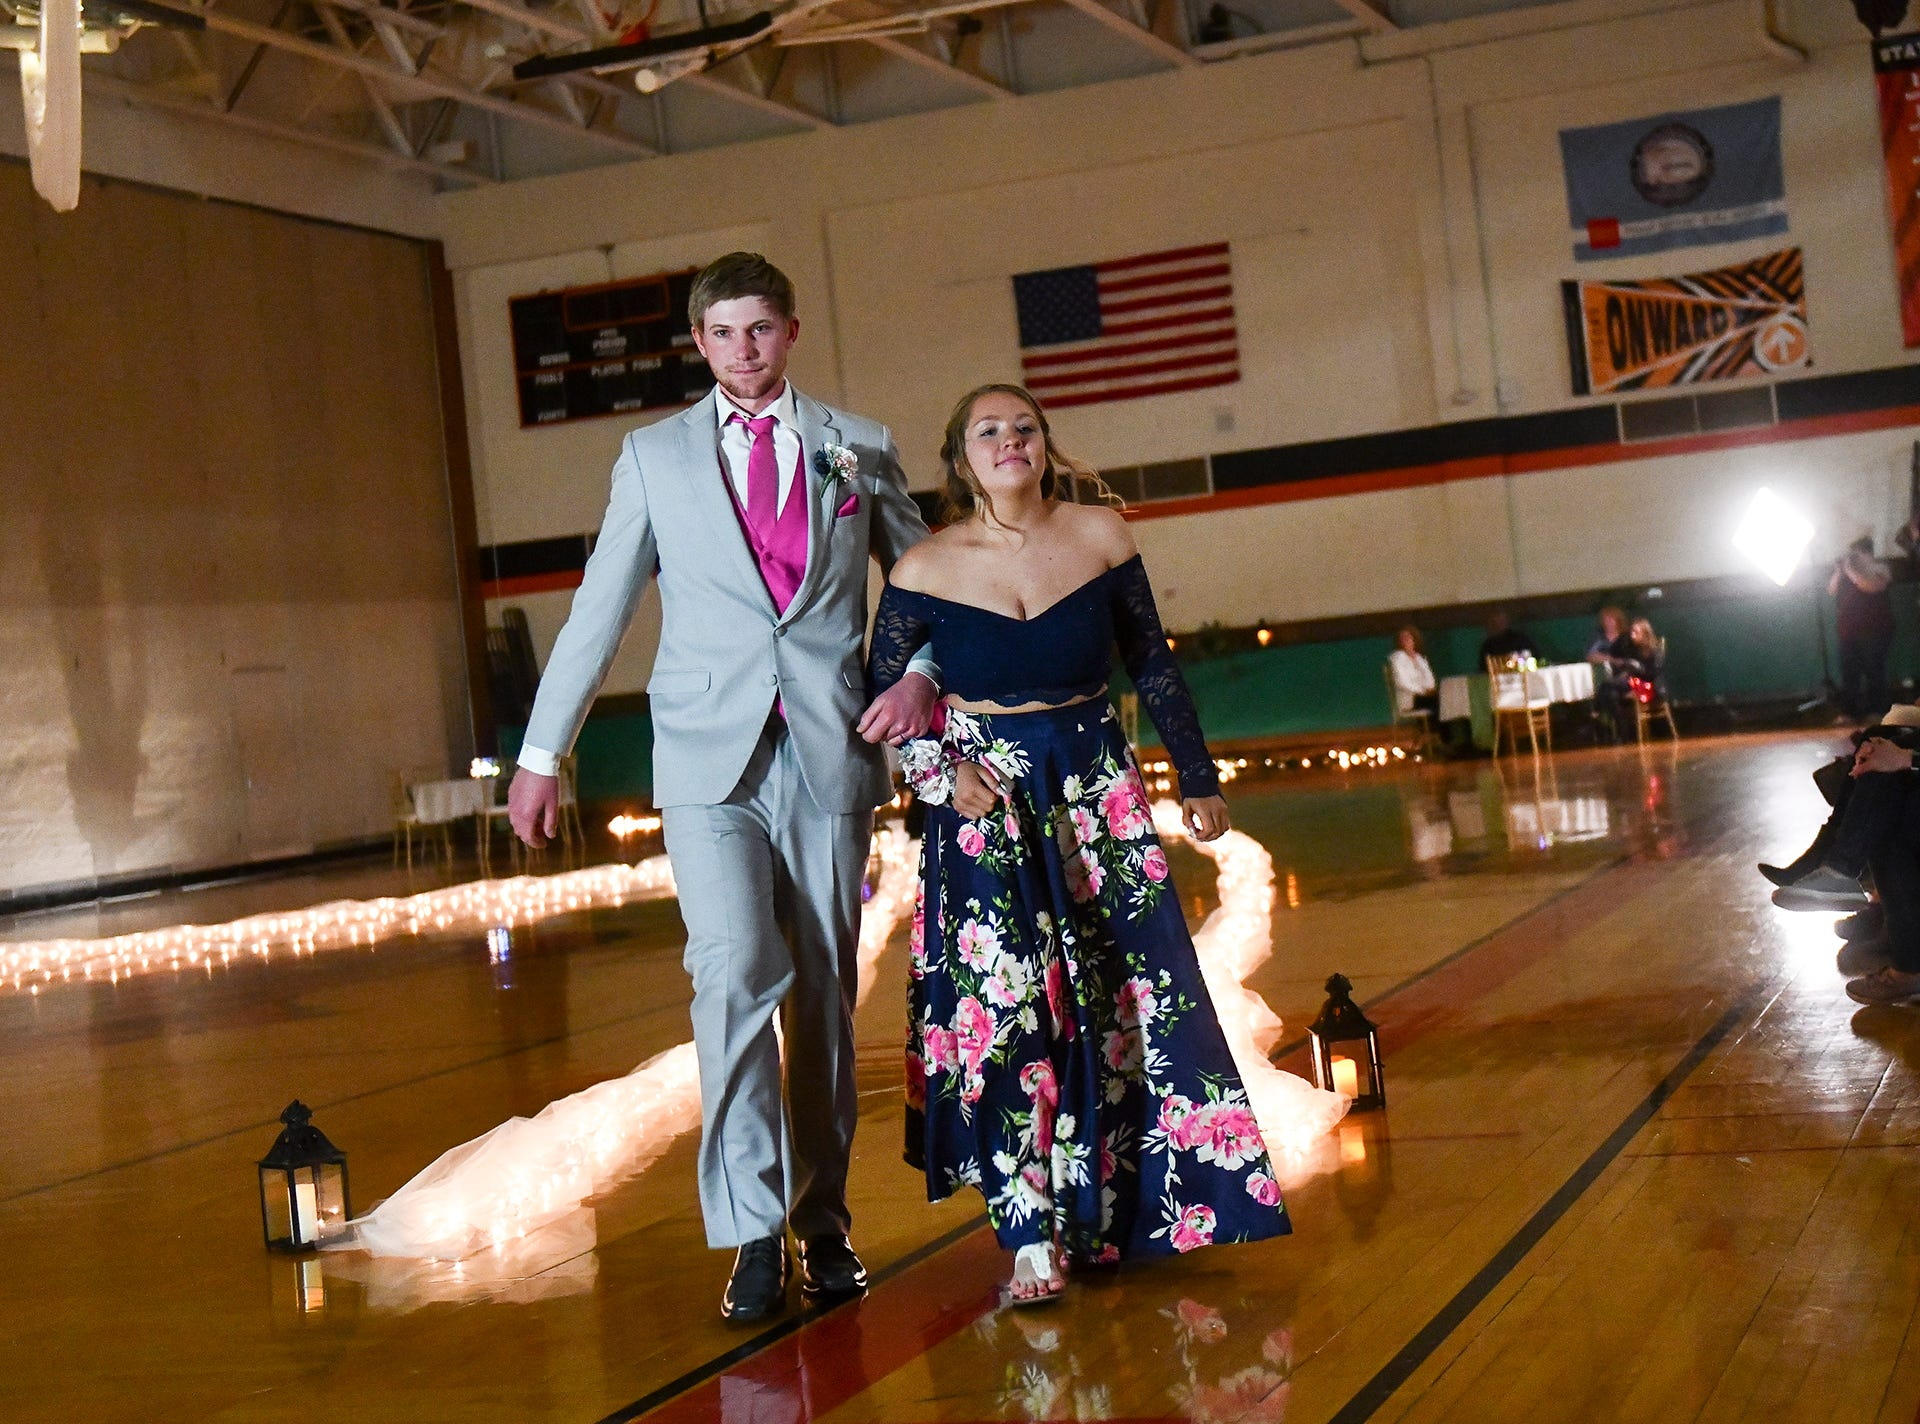 Students complete their turn at prom grand march Saturday, April 27, at Tech High School in St. Cloud.